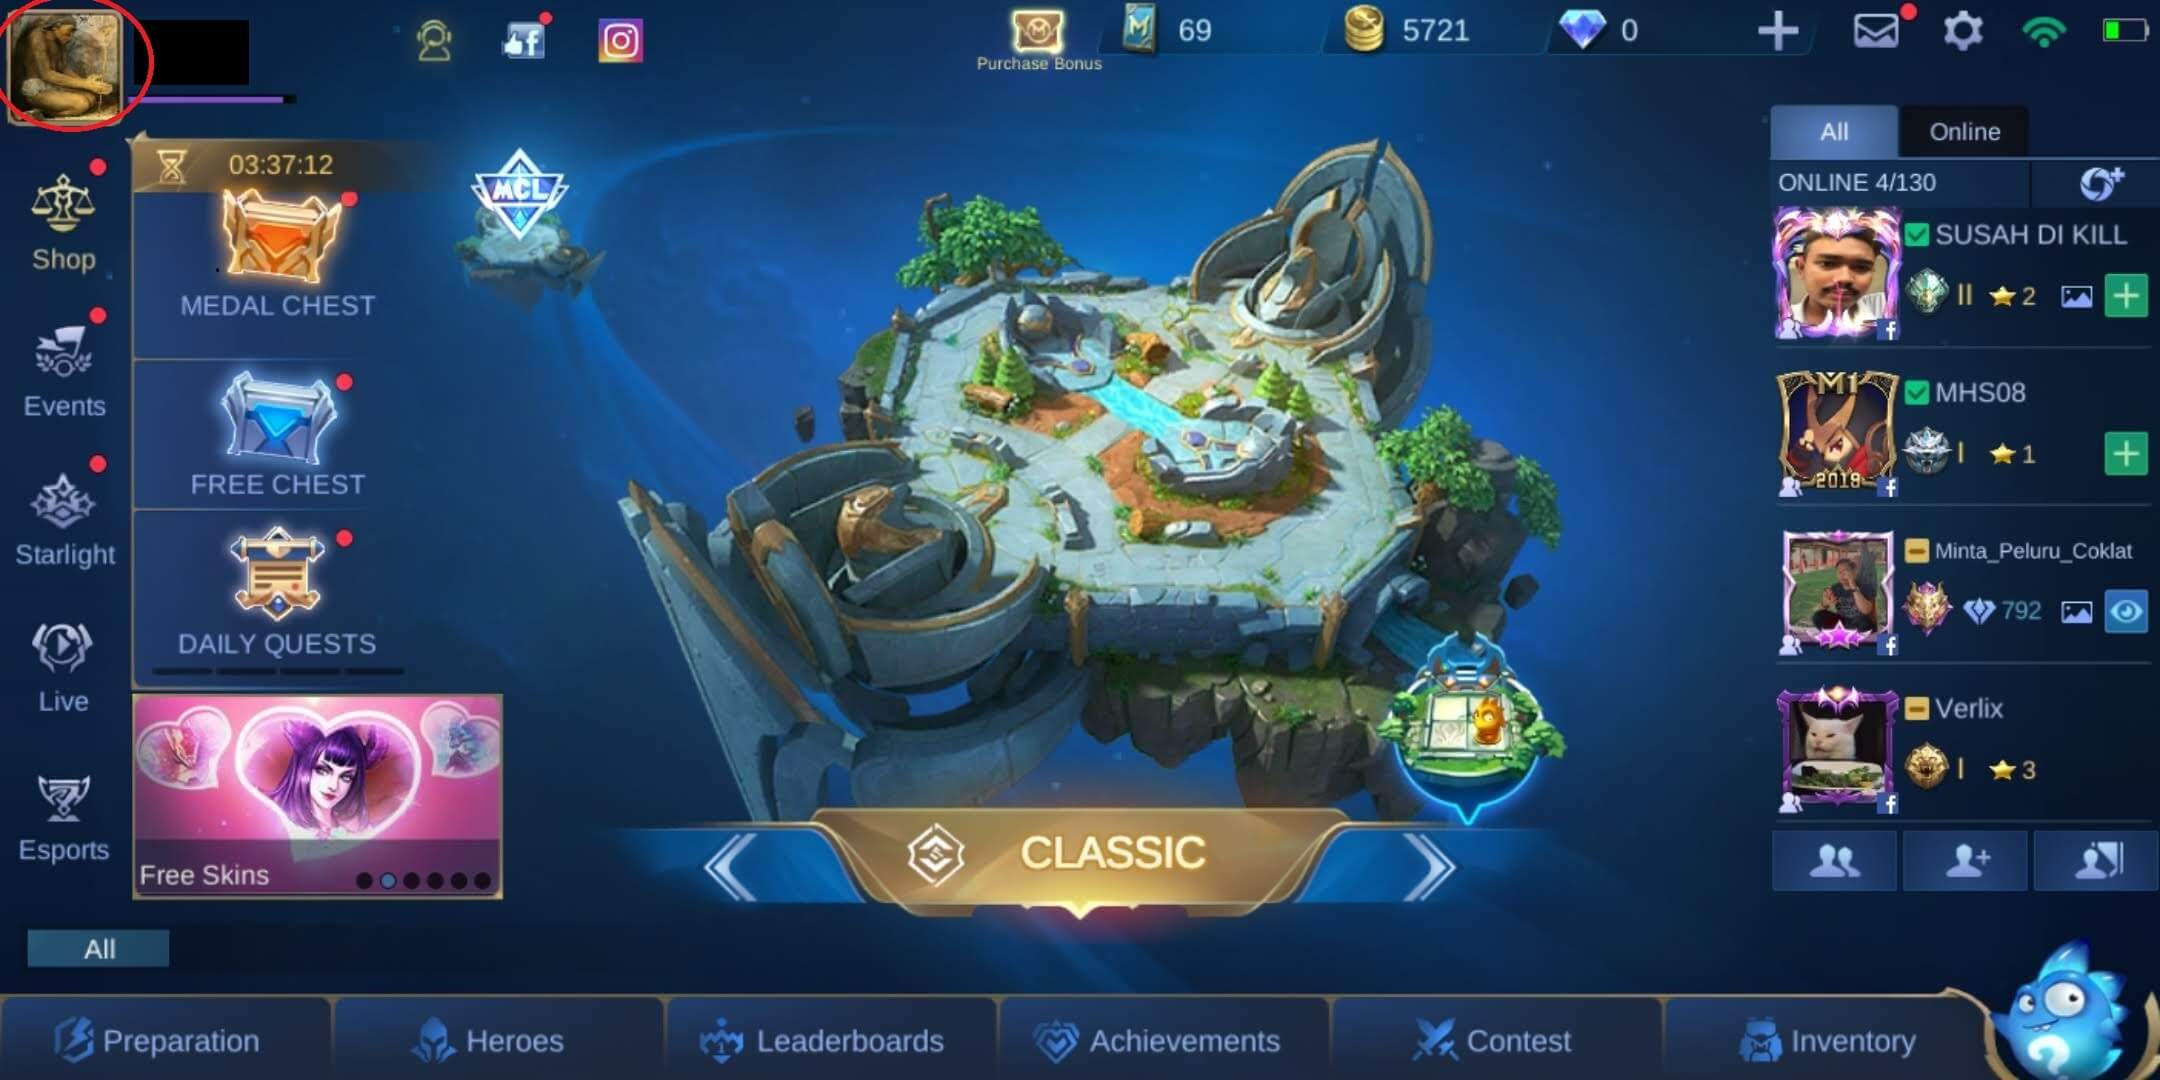 menu game mobile legends